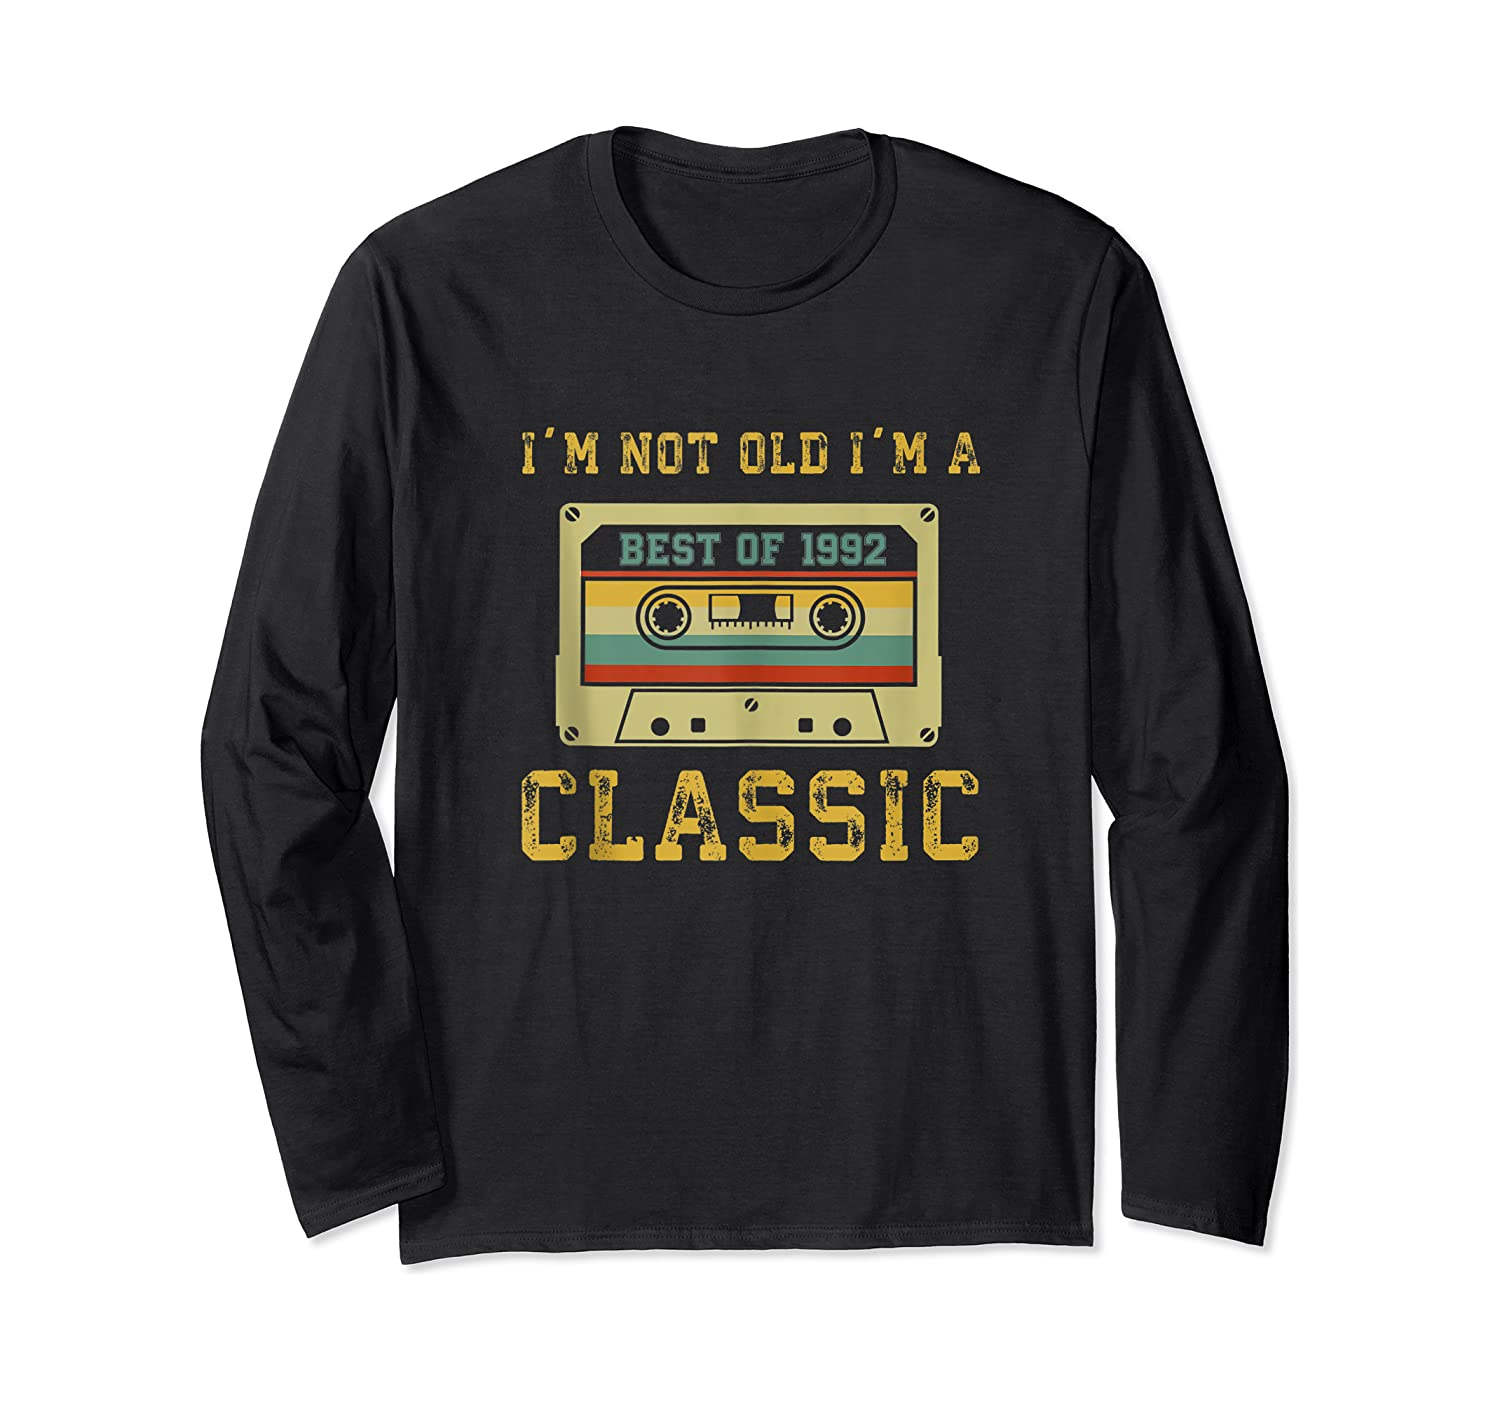 Vintage Cassette I'm Not Old I'm A Classic 1992 27th Tank Top Shirts Long Sleeve T-shirt